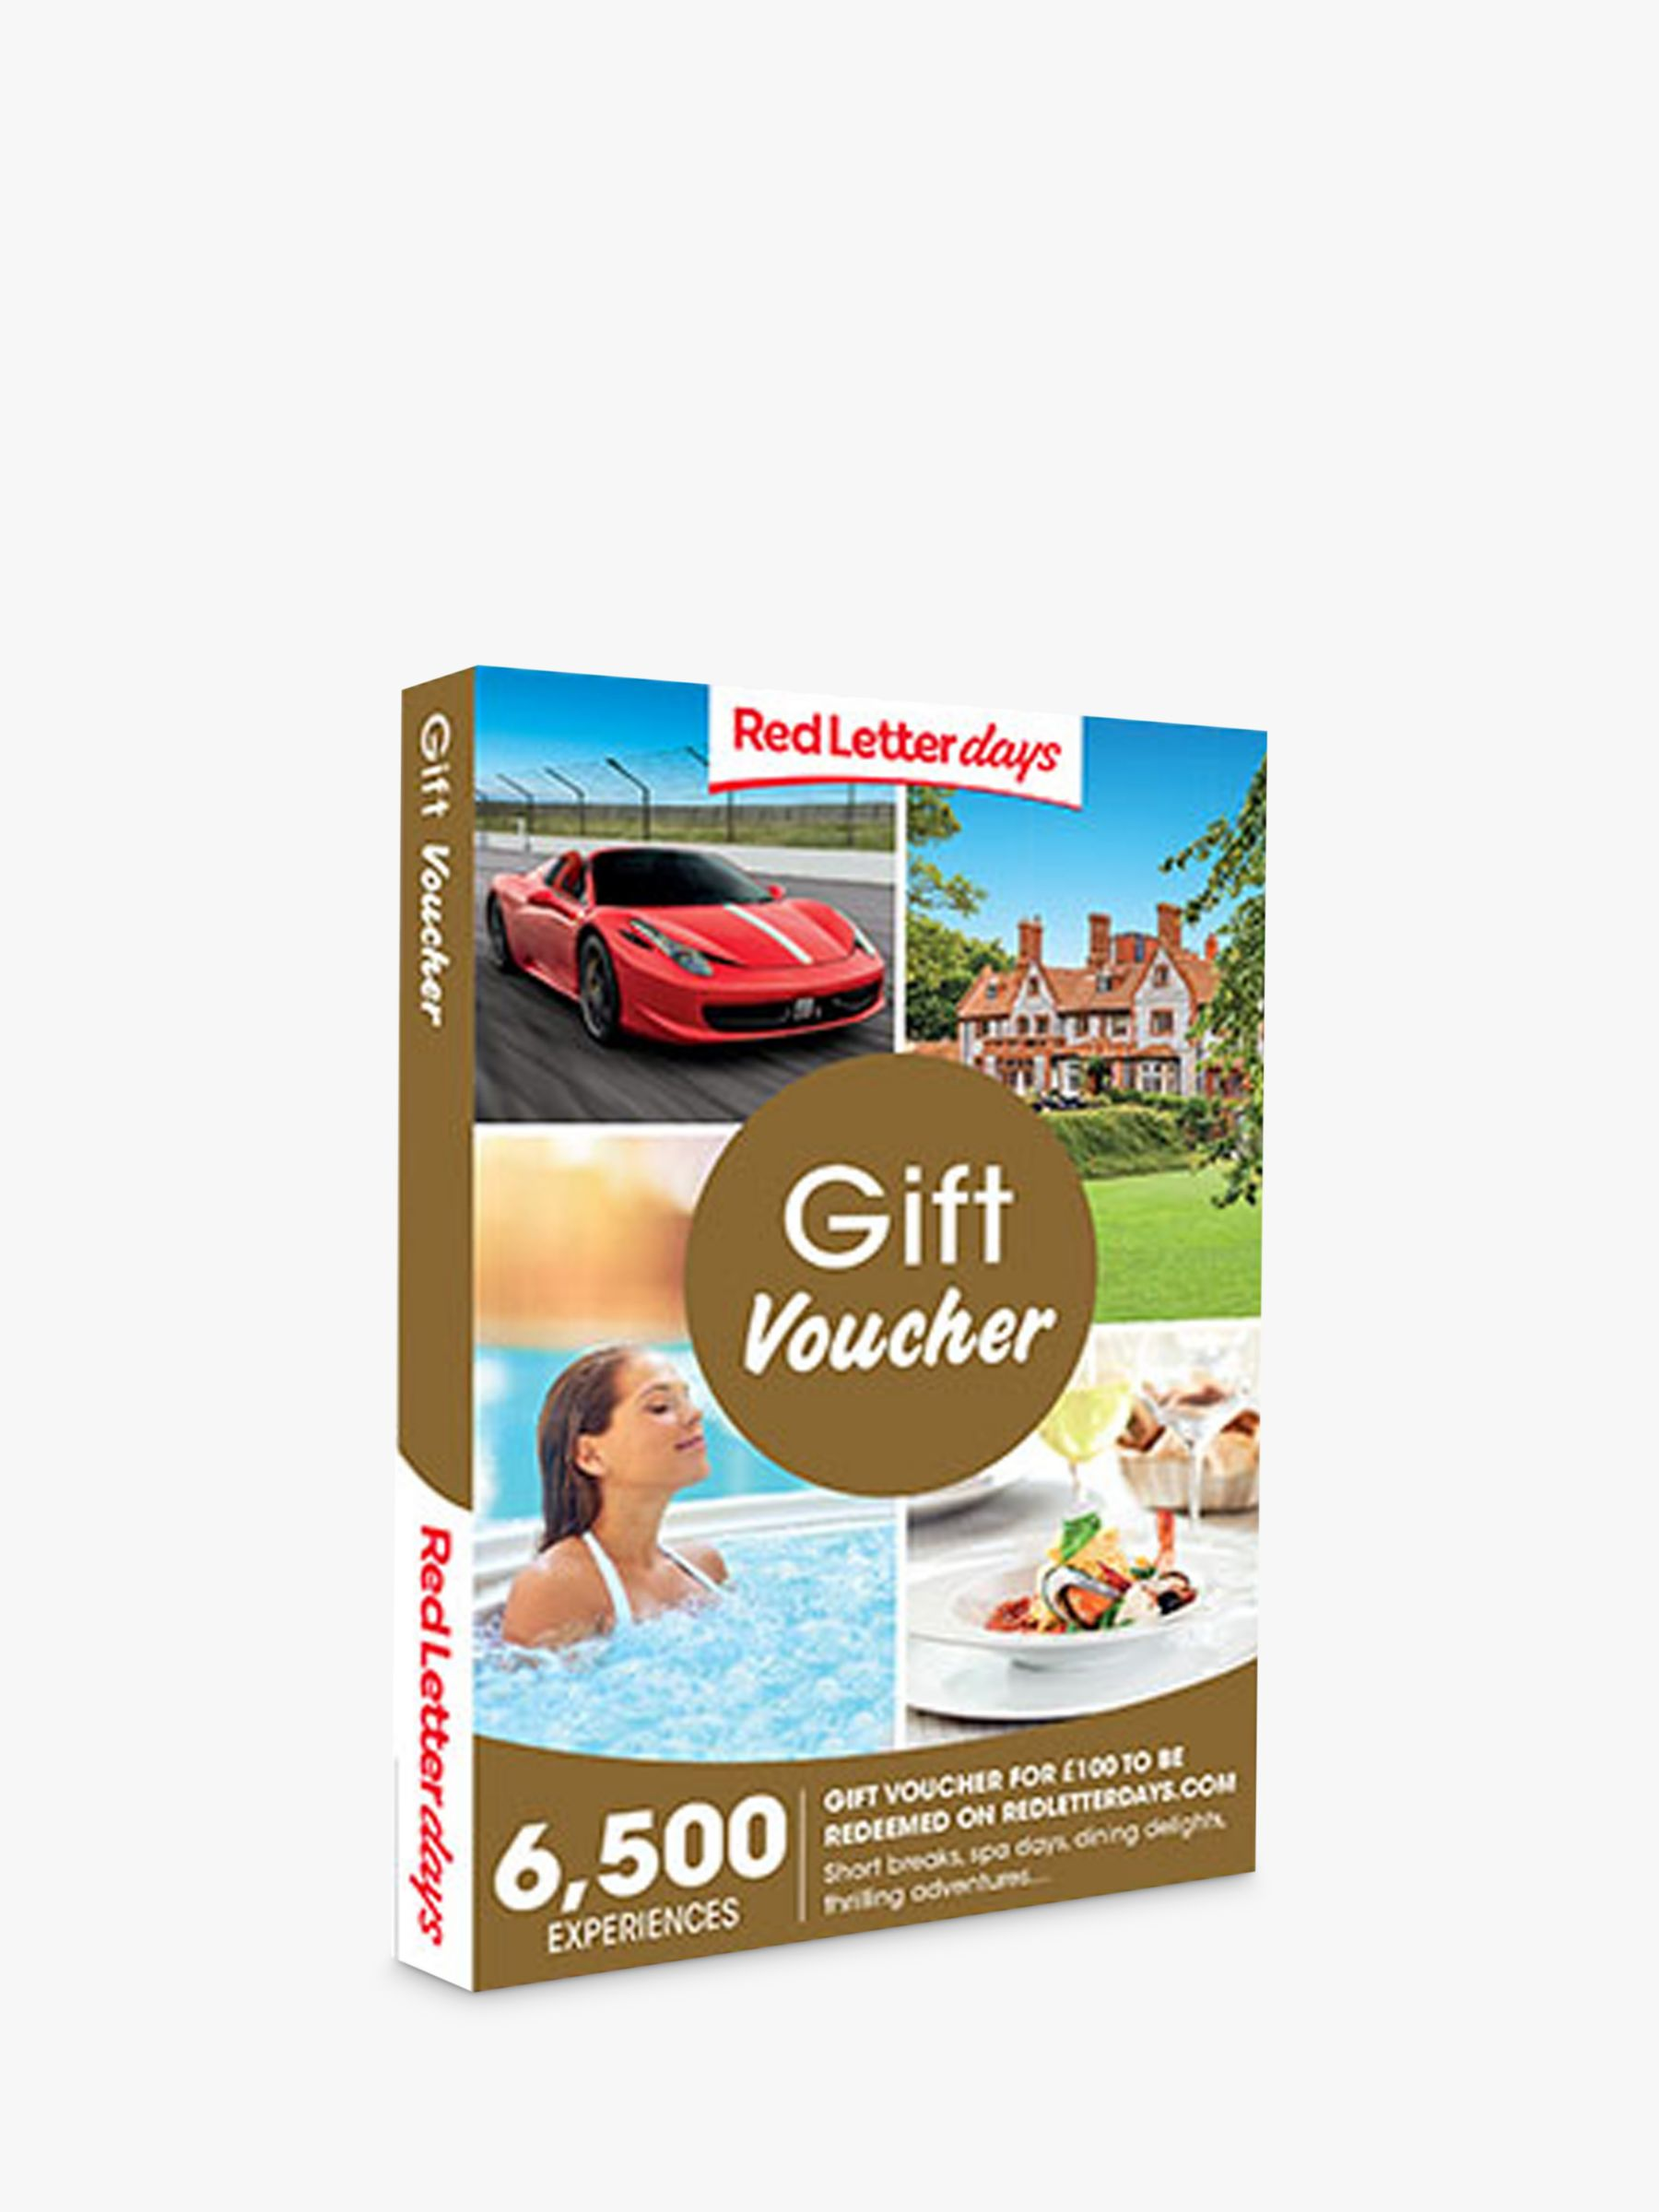 Red Letter Days Red Letter Days £100 Gift Experience Voucher